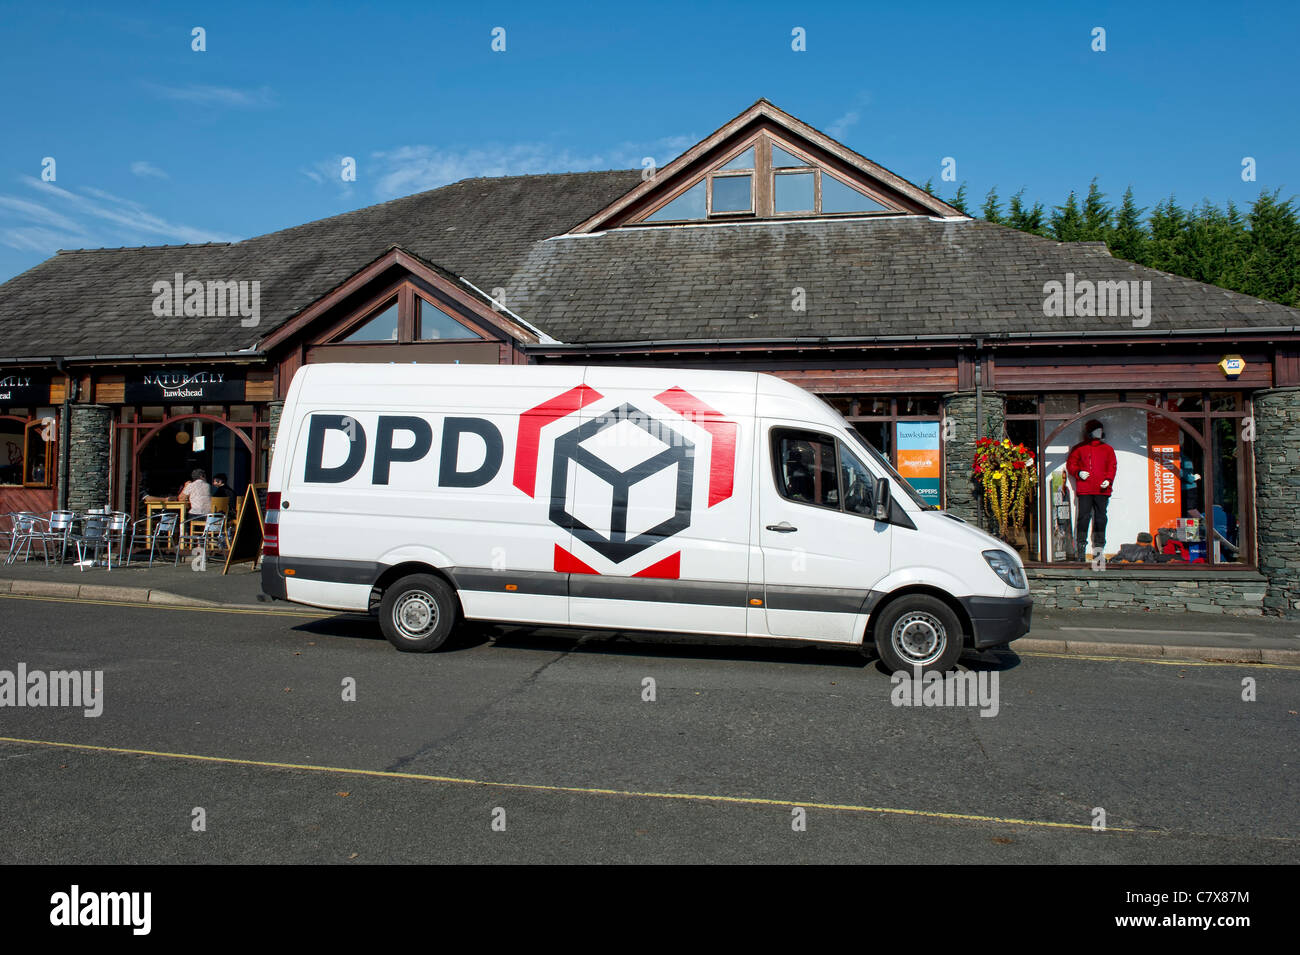 da15373cc8f222 DPD parcel delivery van outside a shop in the town of Hawkshead in Cumbria